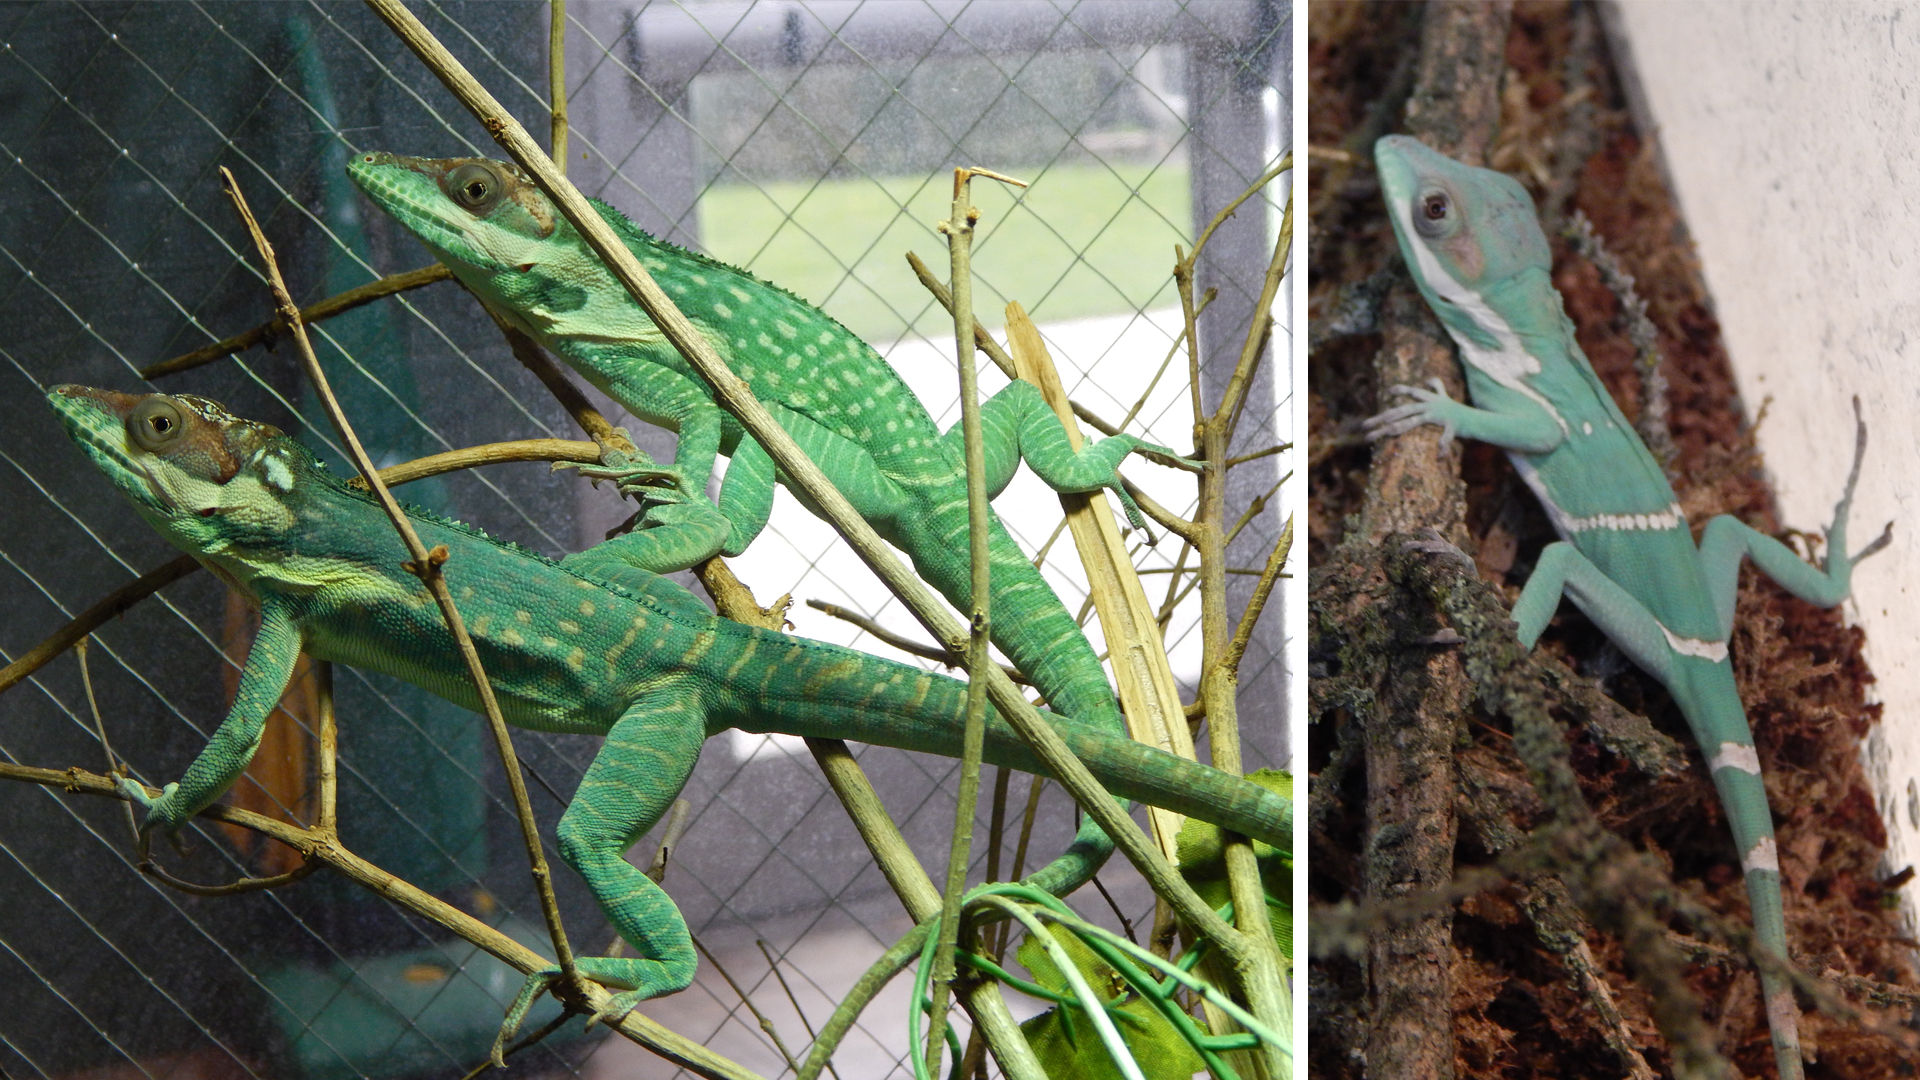 A pair of Smallwood's anole lizards (pictured on right) at Niabi Zoo had four eggs that hatched producing offspring (one is pictured on the left) in March and April of 2020 (photos courtesy of Niabi Zoo).